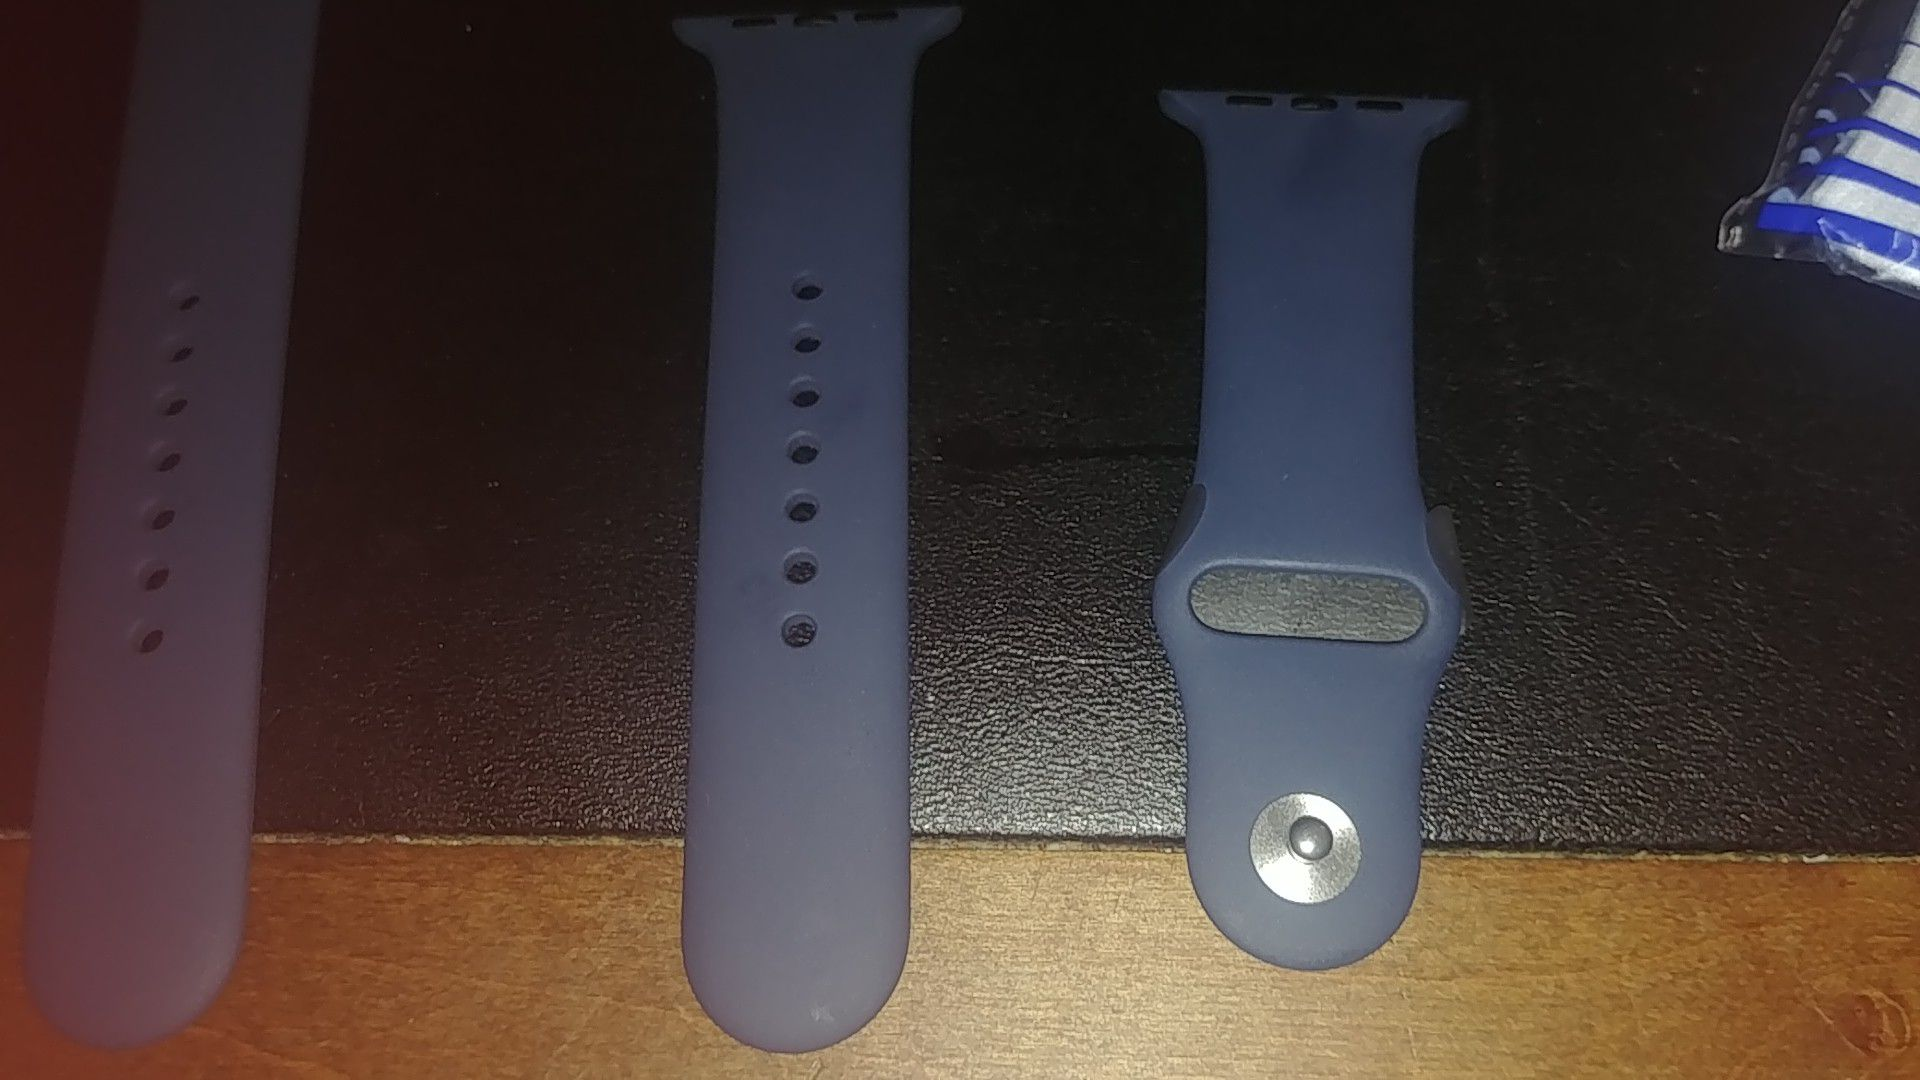 BRAND NEW APPLE WATCH BANDS!!